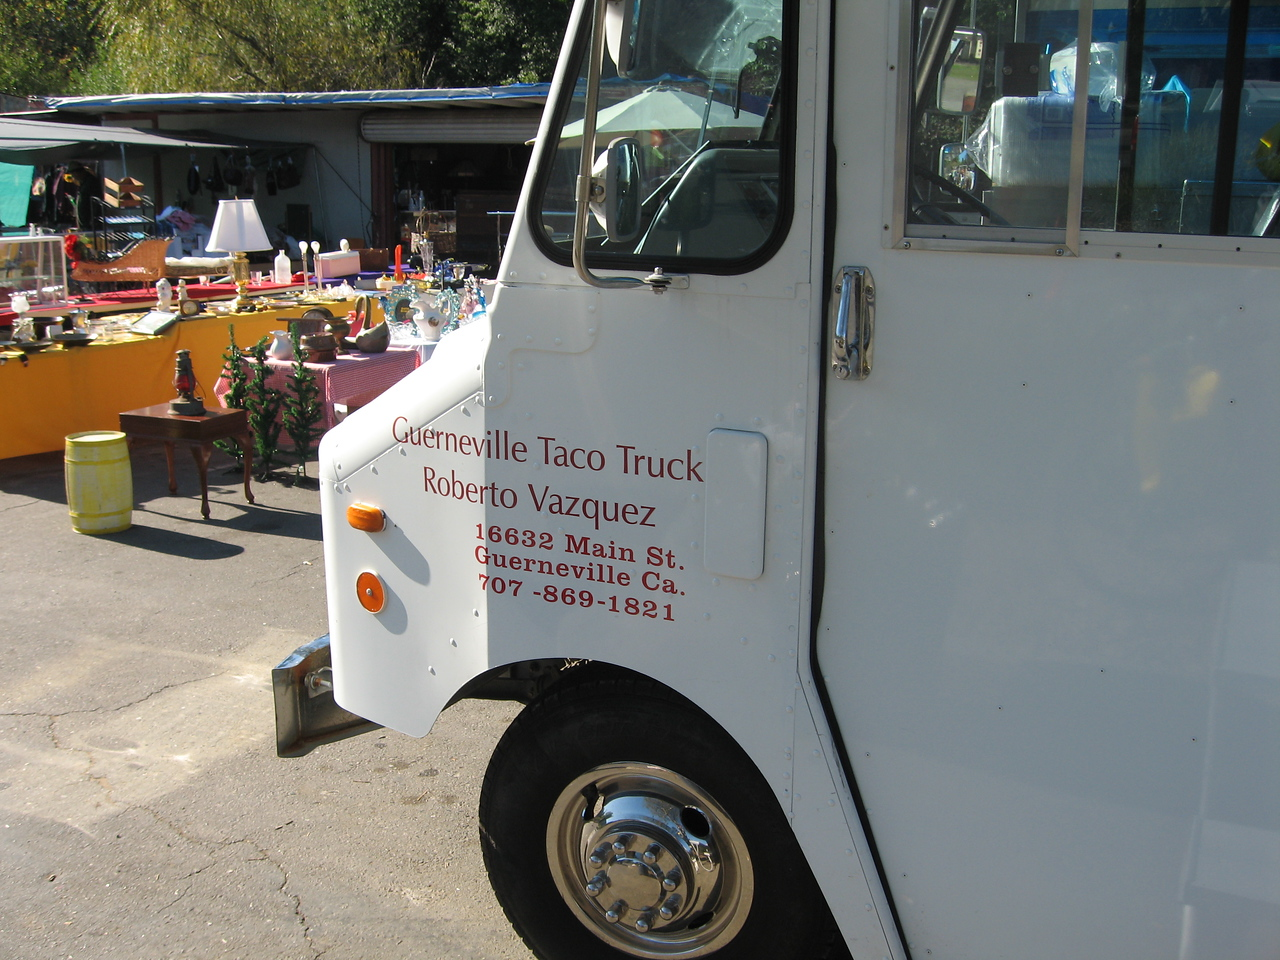 The Guerneville TACO TRUCK!!!  Woohoo!!!  And it was damn good!